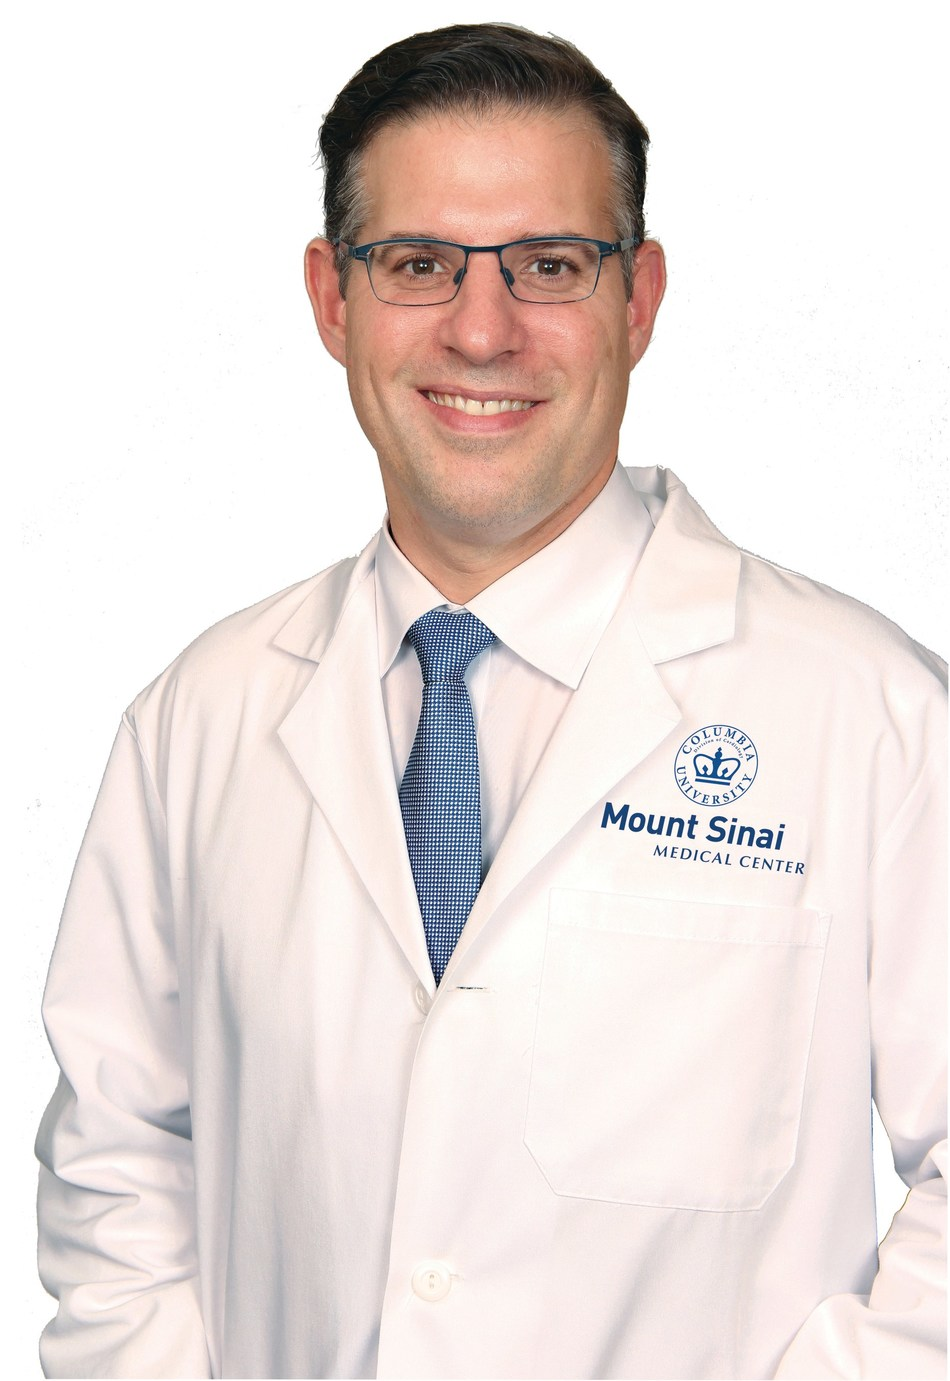 Steve Xydas, M.D., is Mount Sinai Medical Center of Florida's new chief of cardiac surgery.